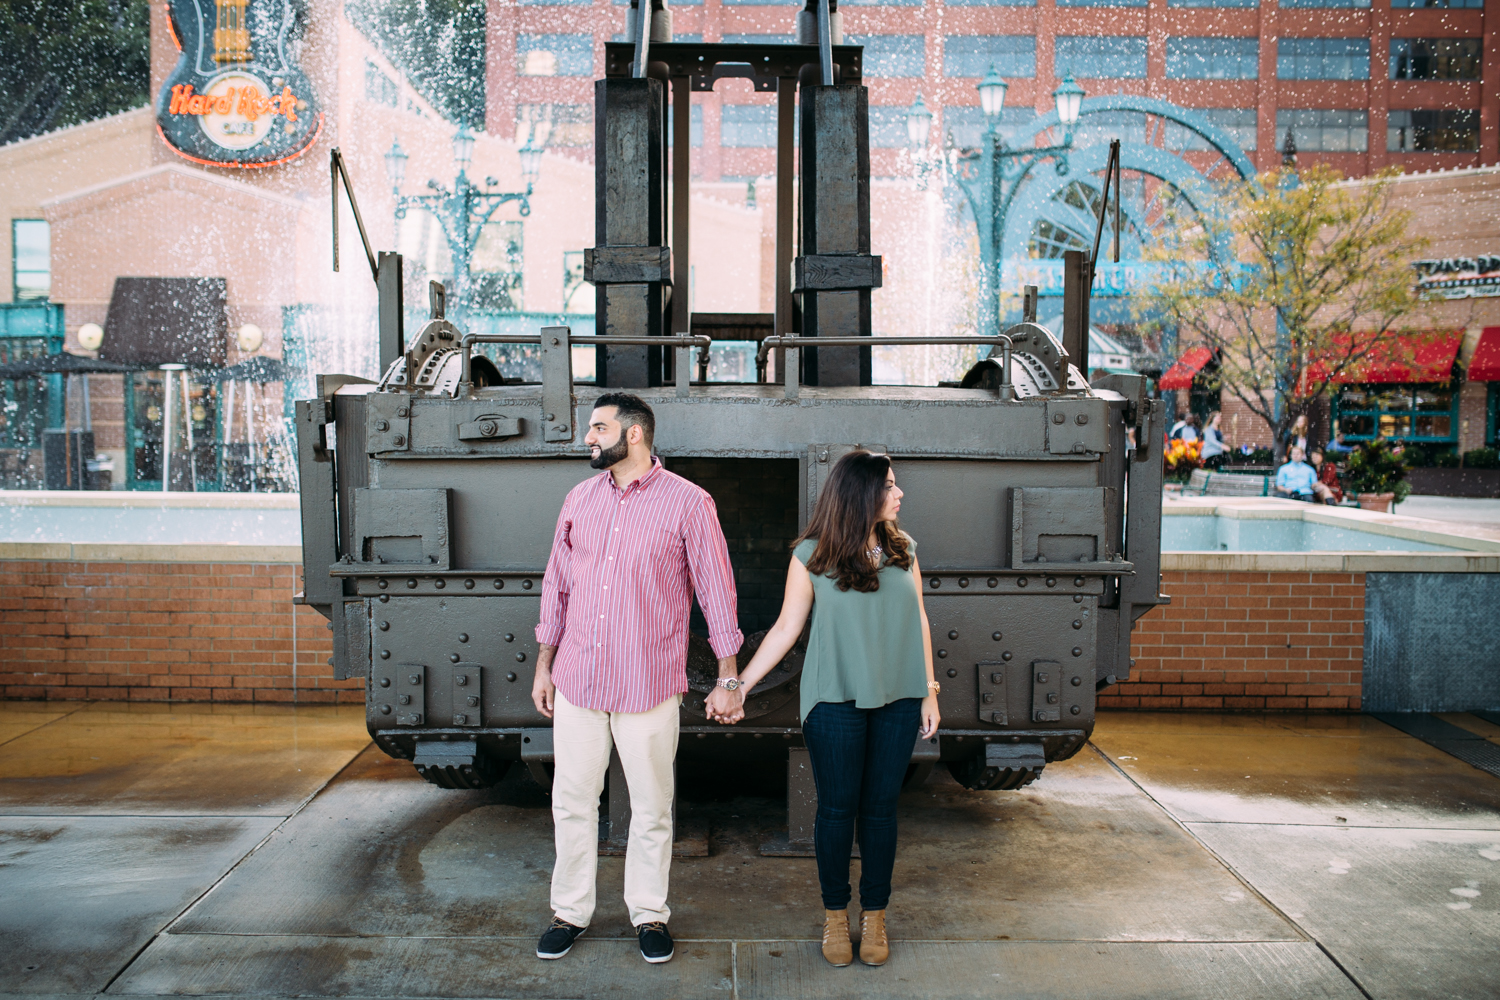 Ashley-reed-photography-pittsburgh-engagement-engagementphotography-engagementphotographer-stationsquare-statio-square-pittsburghengagementphotography-10.jpg